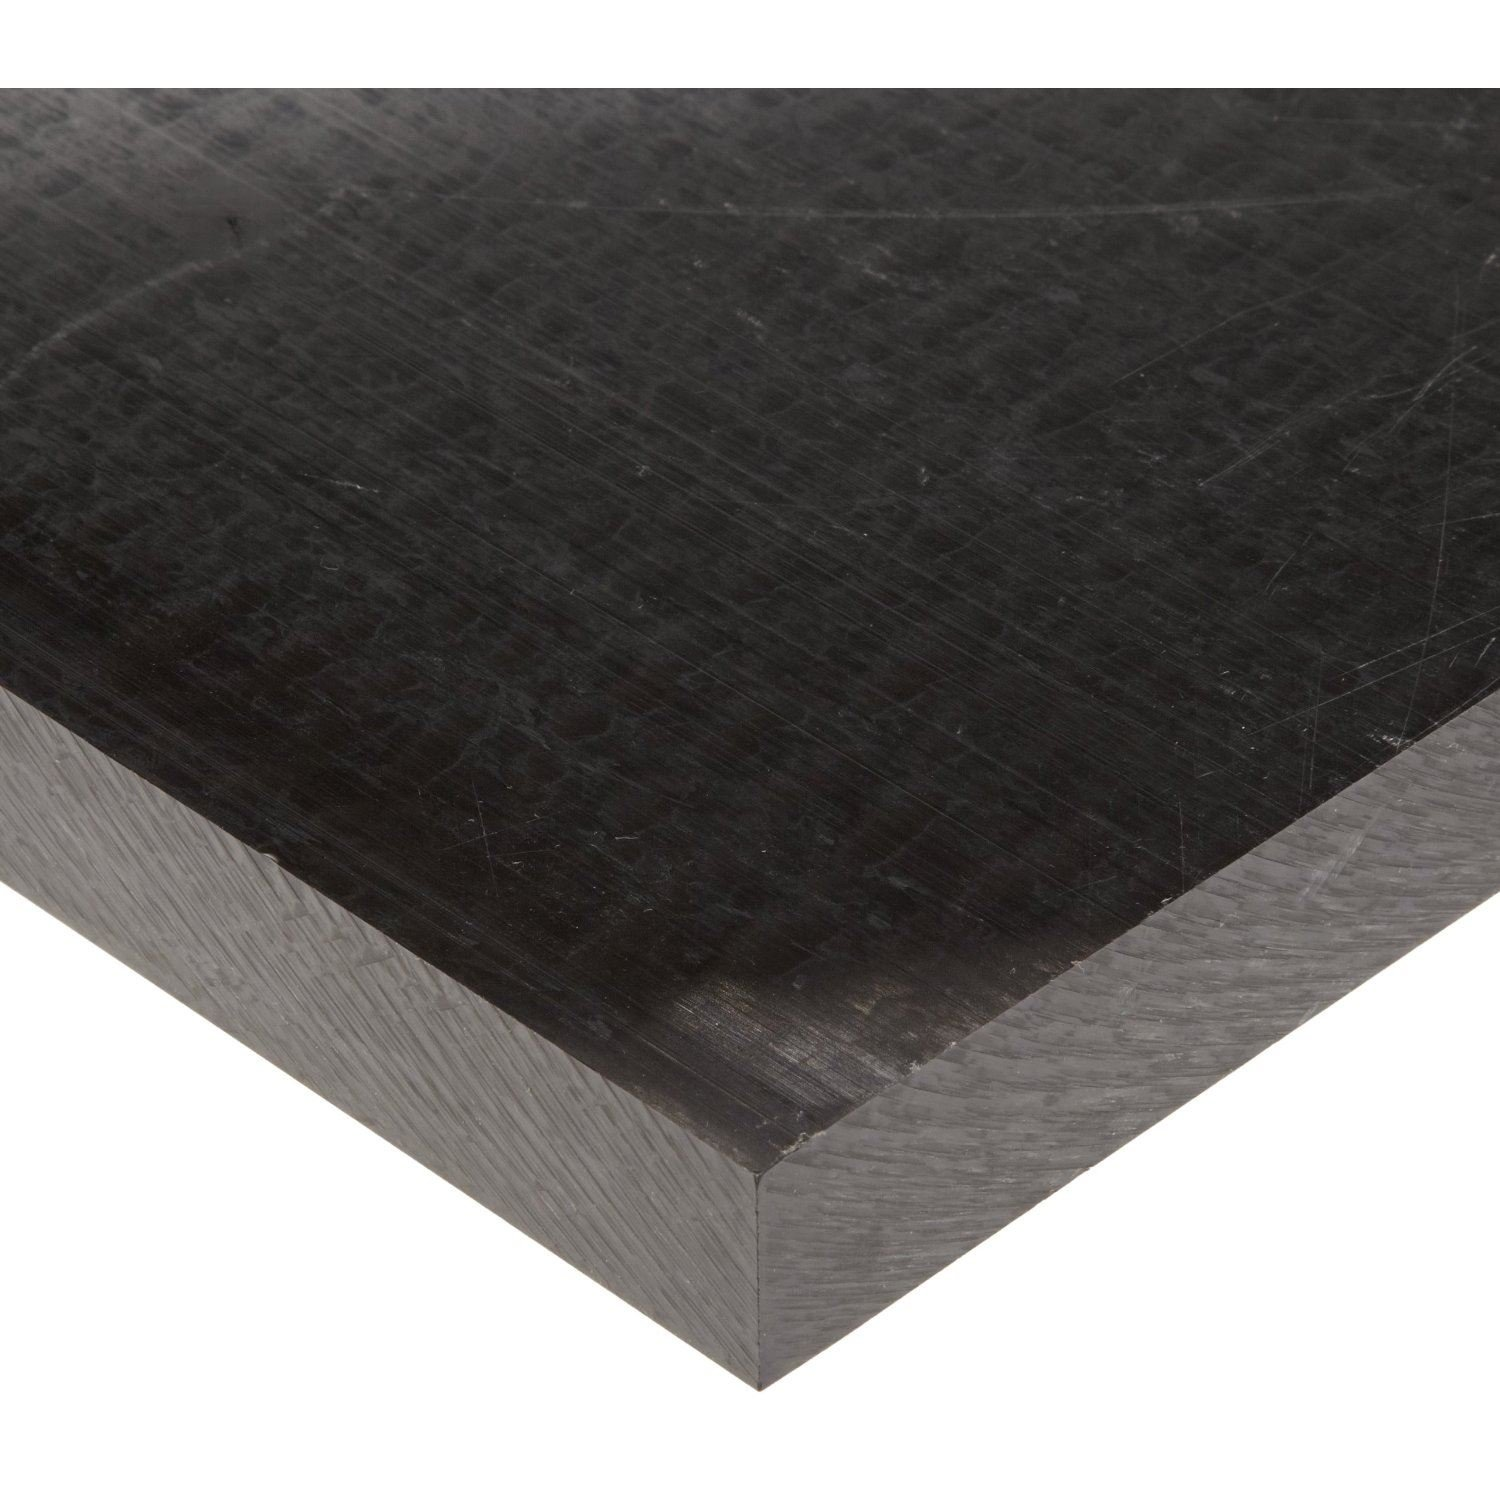 - Black Nominal Extruded Acetal Sheet 12x 24 x 0.125 Thick